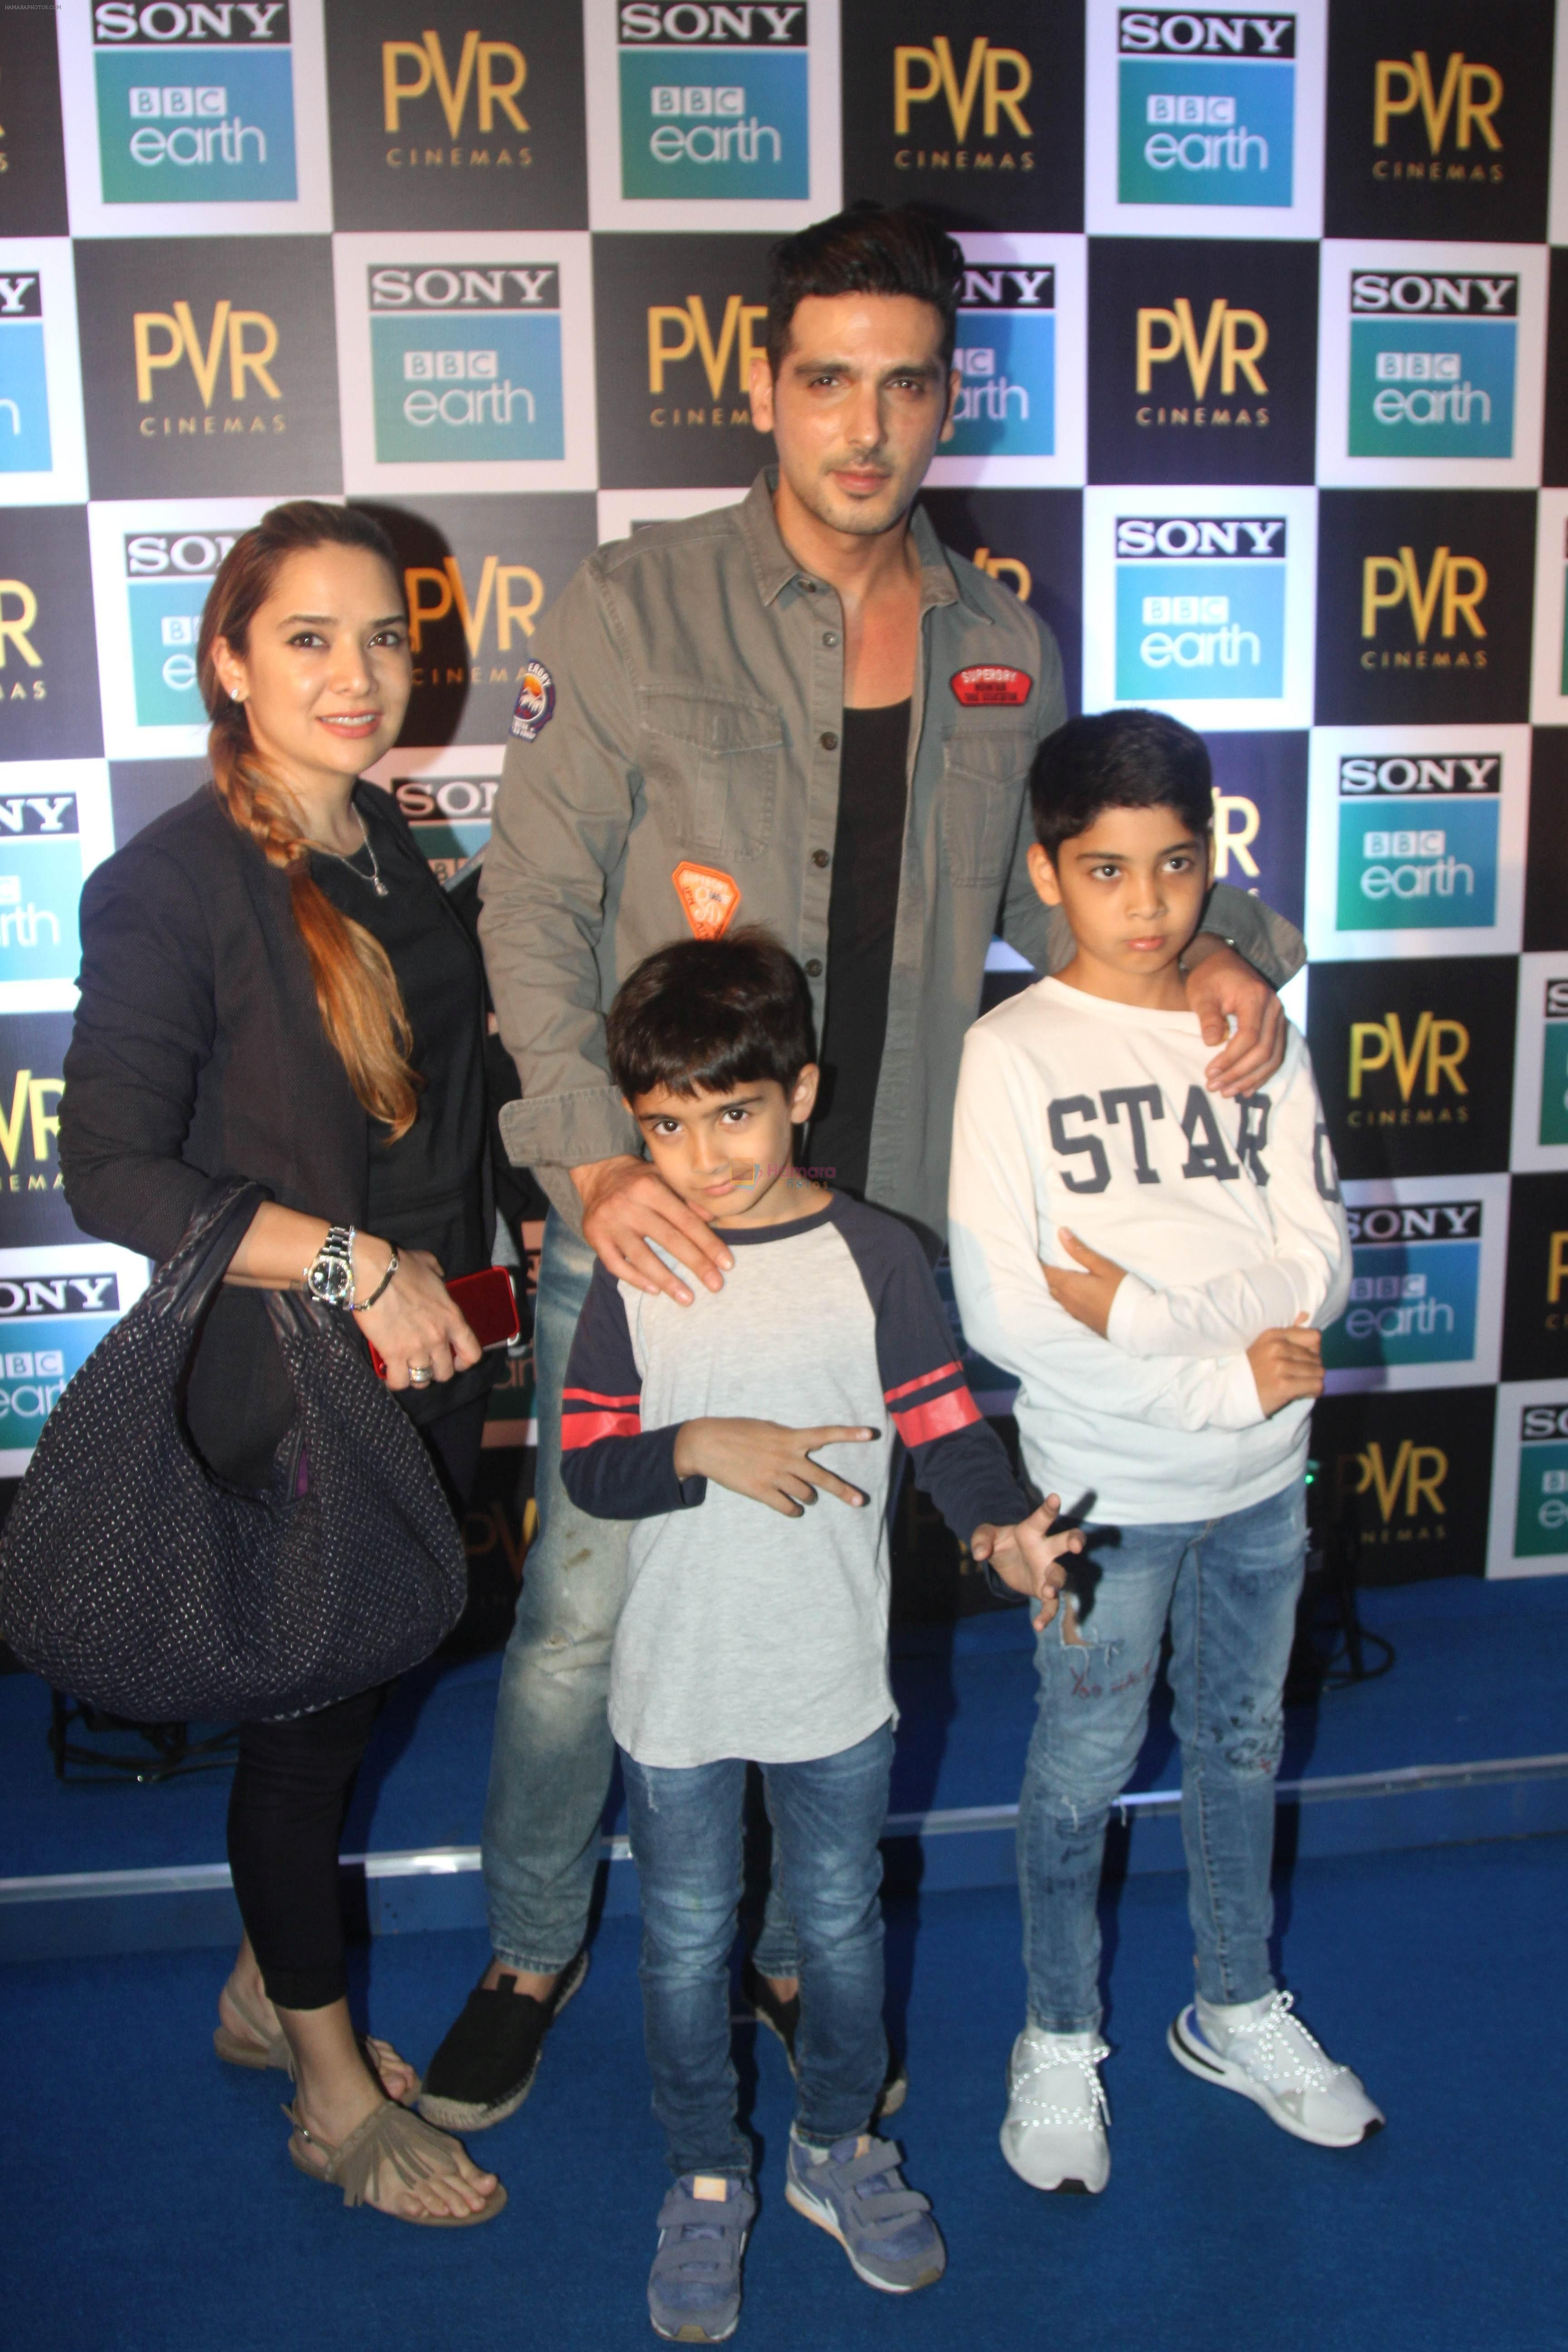 Zayed Khan at the Screening of Sony BBC Earth's film Blue Planet 2 at pvr icon in andheri on 15th May 2018